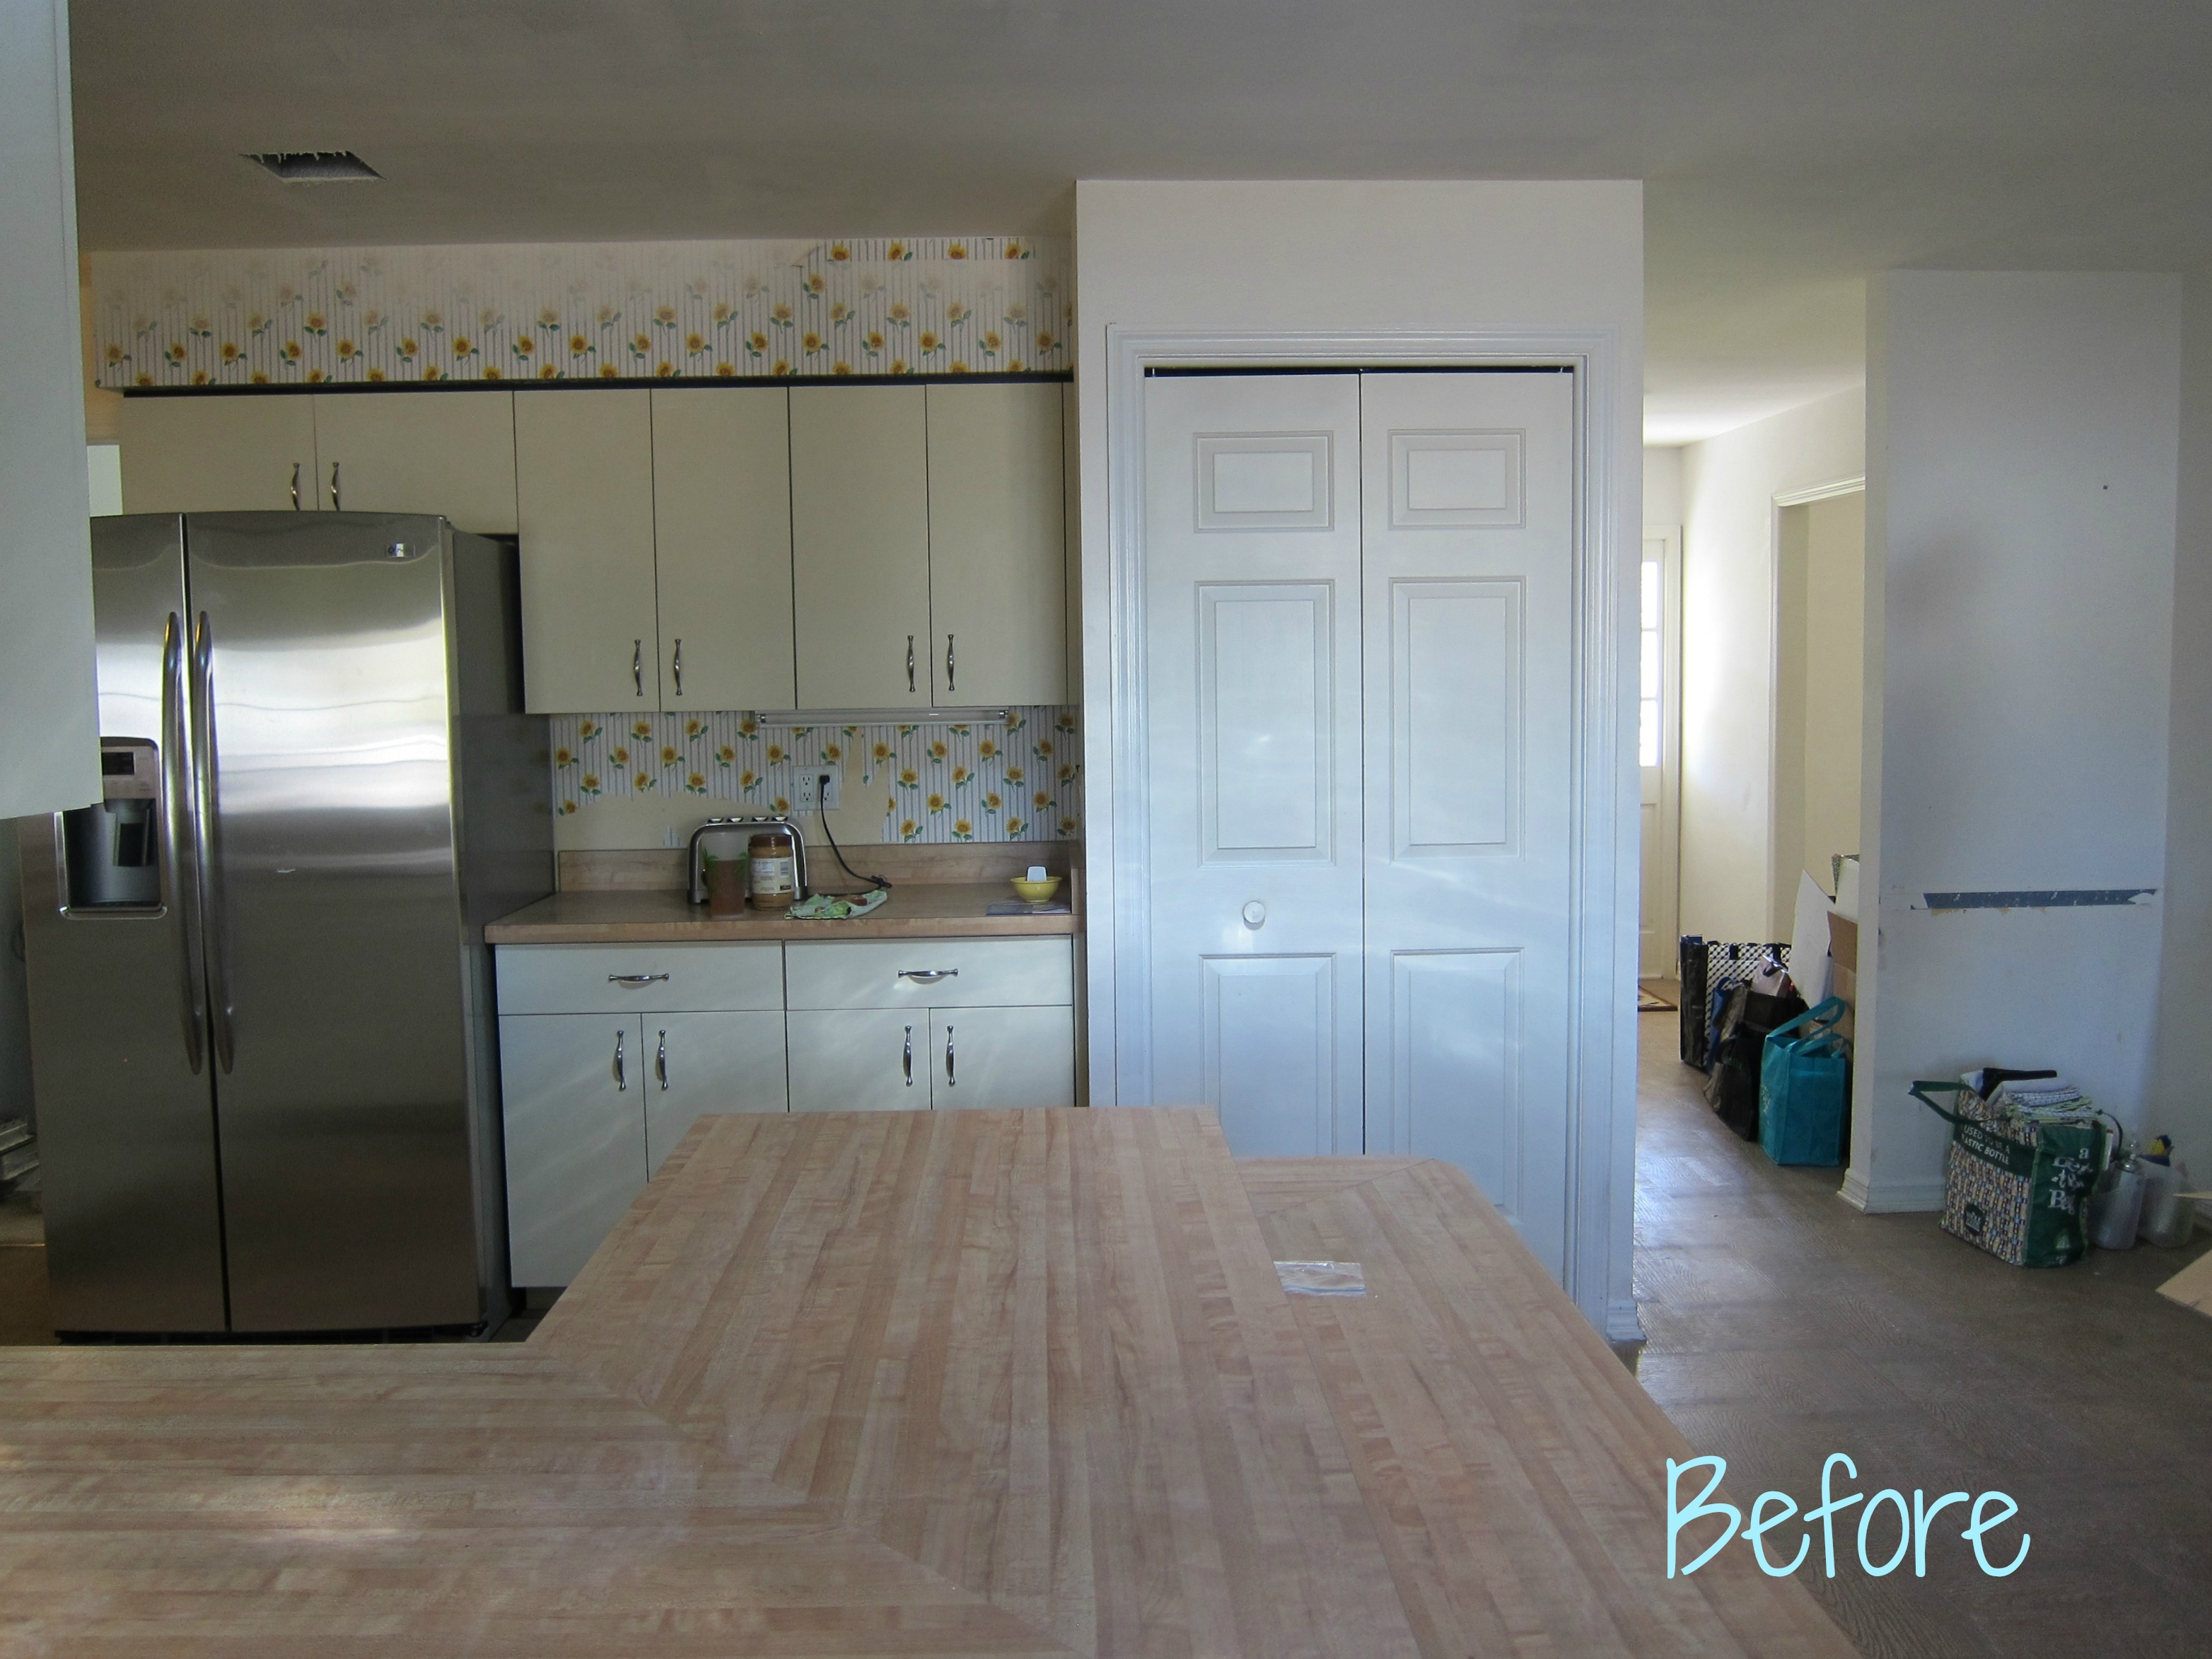 hope kitchen cabinets home depot glass tile backsplash remodel | the fetch ranch